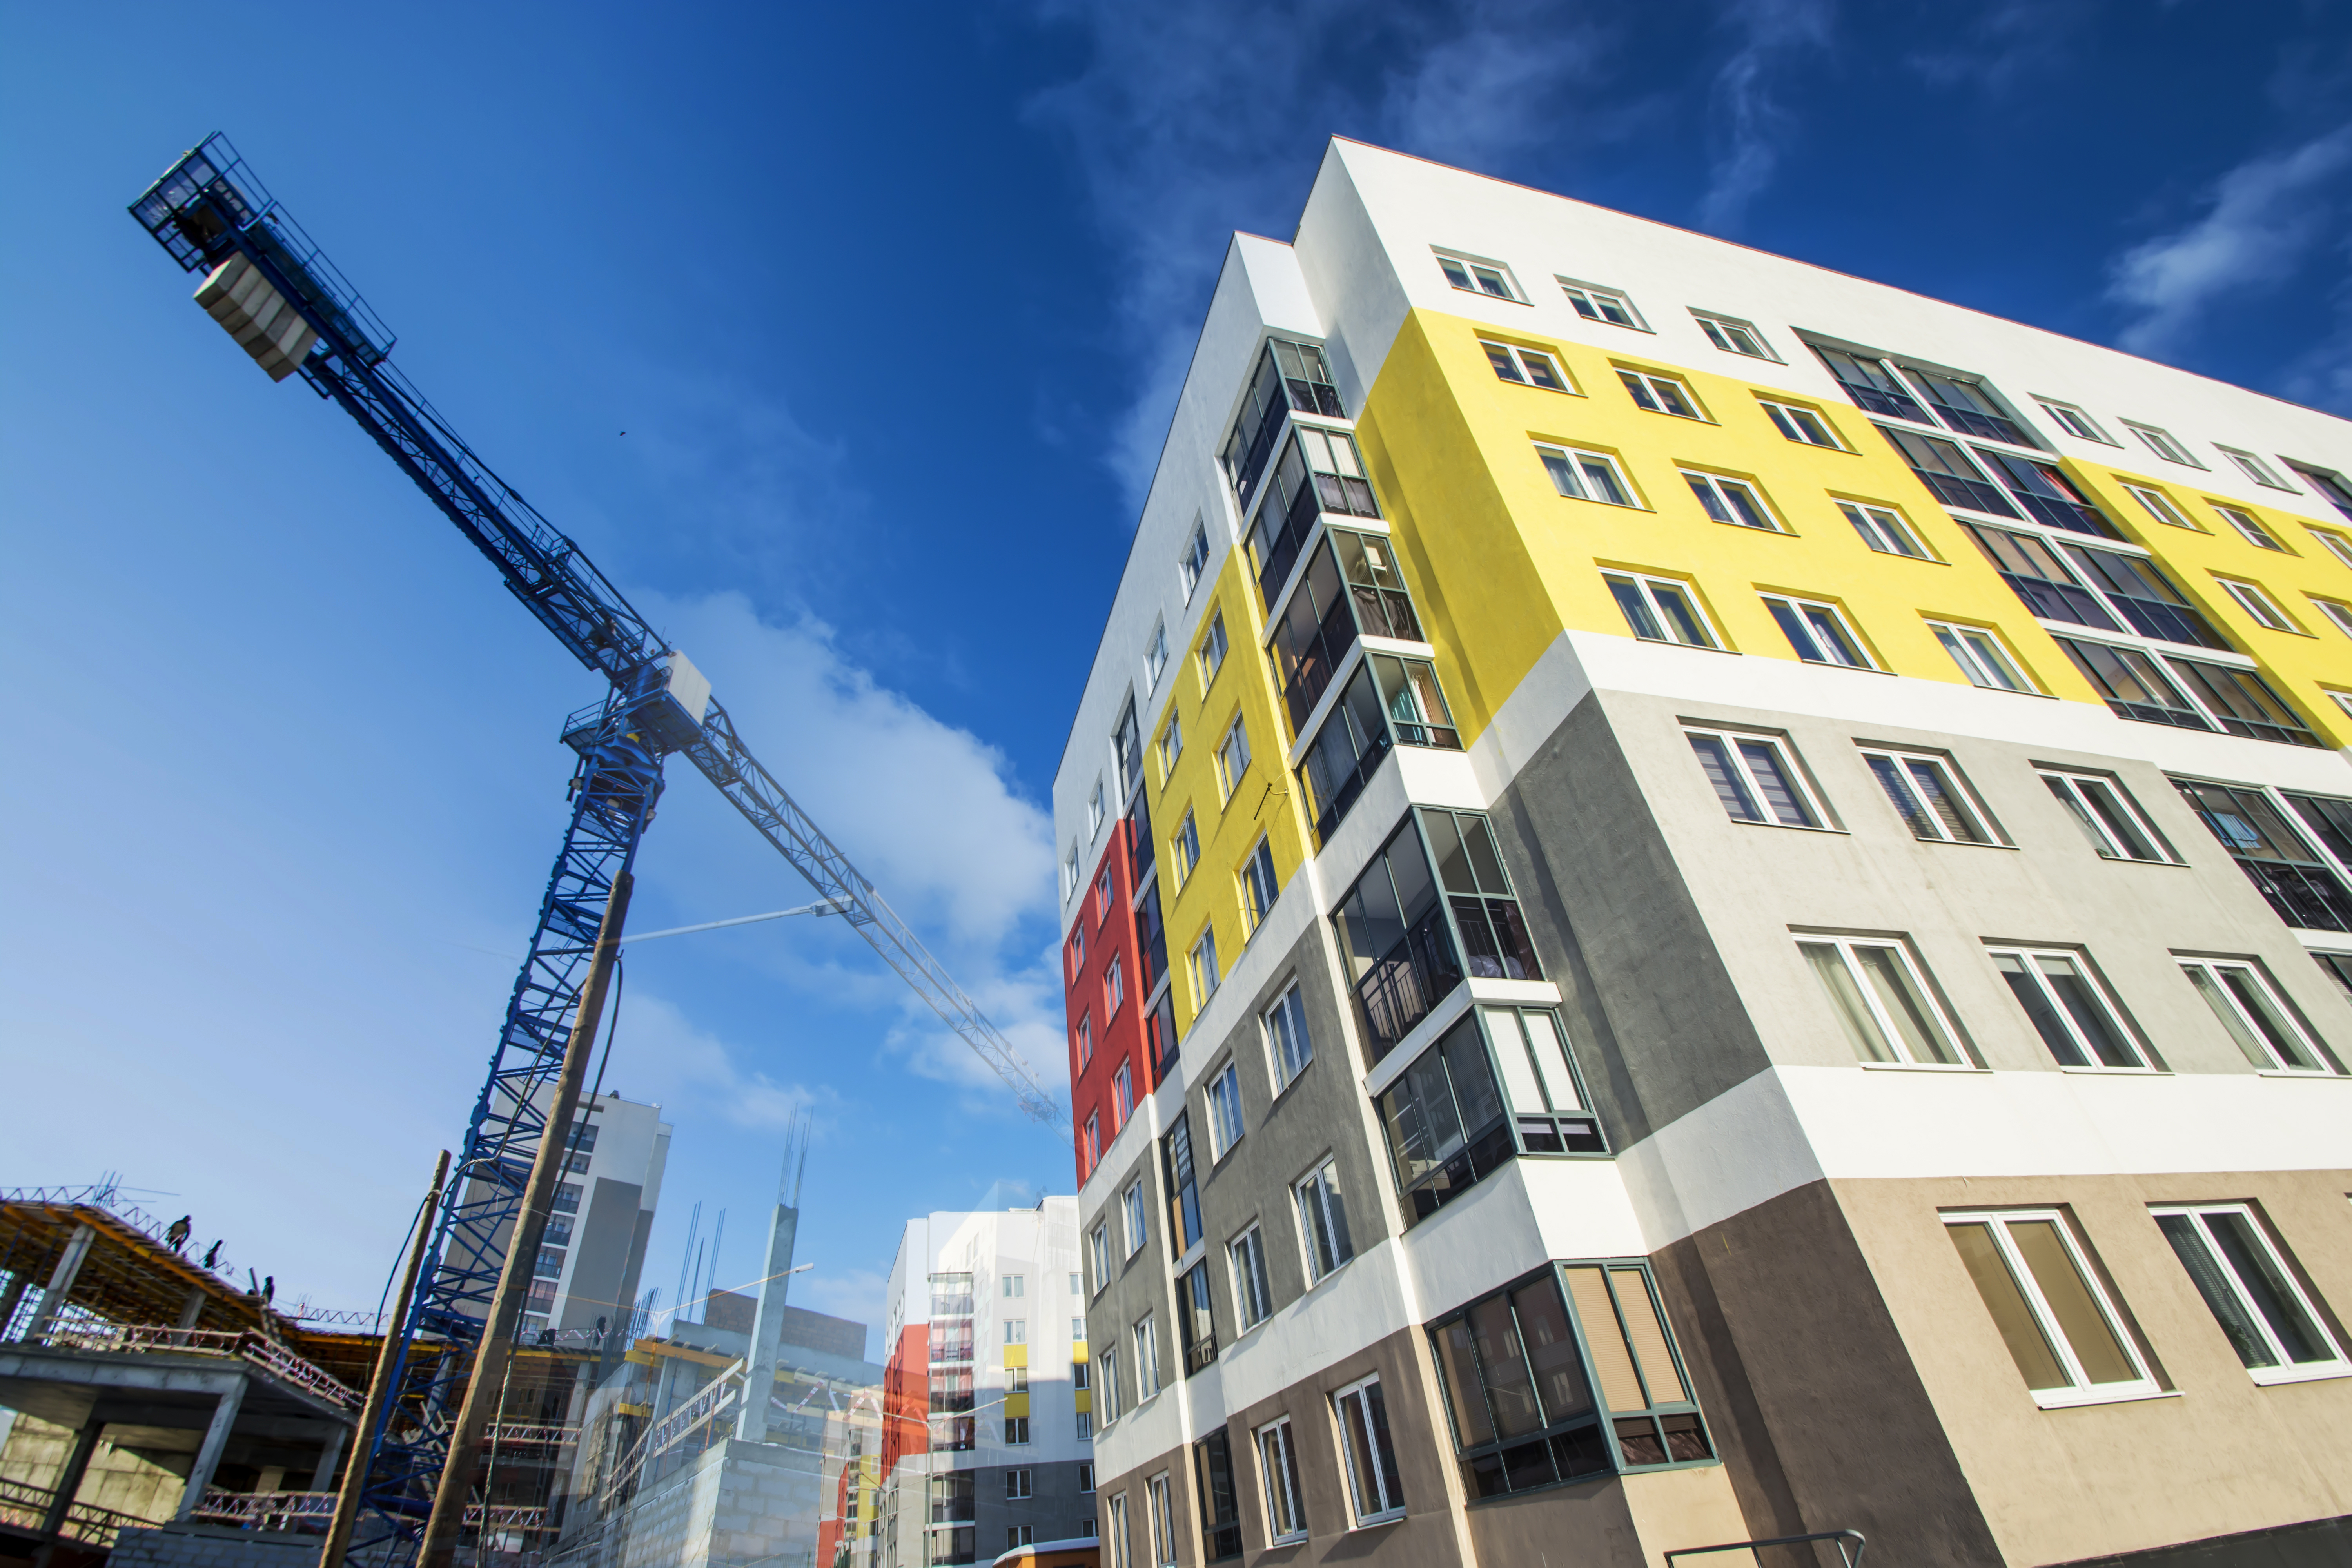 A crane swings next to a new, modern apartment building finishing construction.